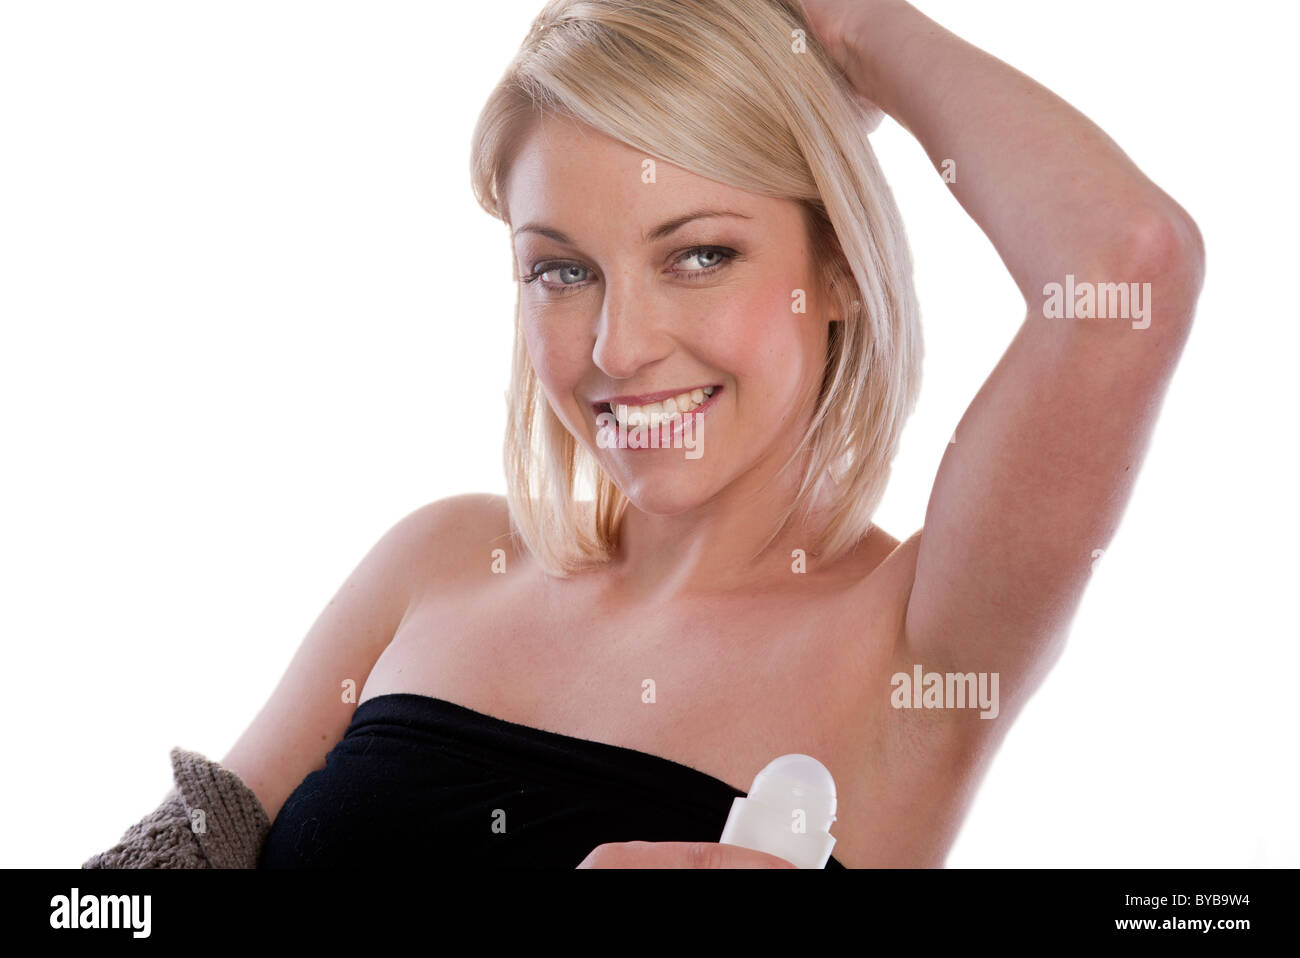 blonde woman applying deodorant to underarms - Stock Image